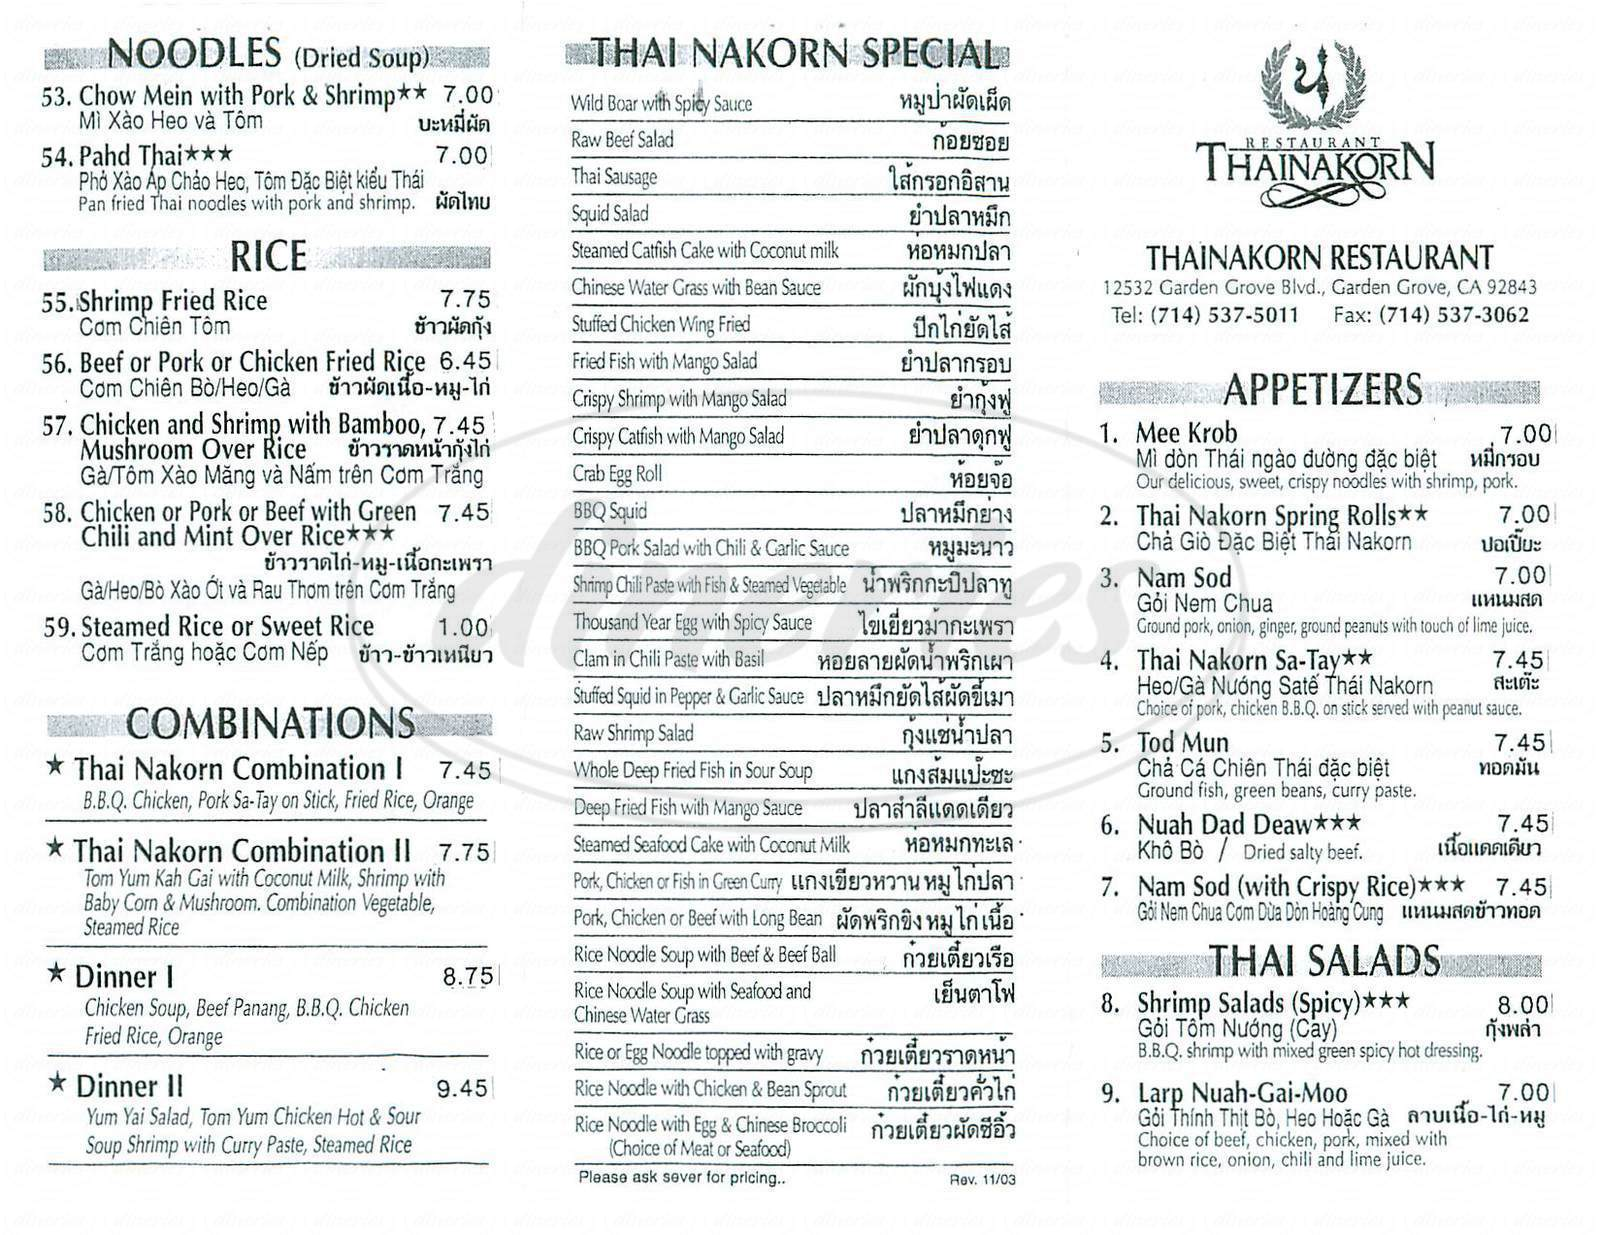 menu for Thai Nakorn